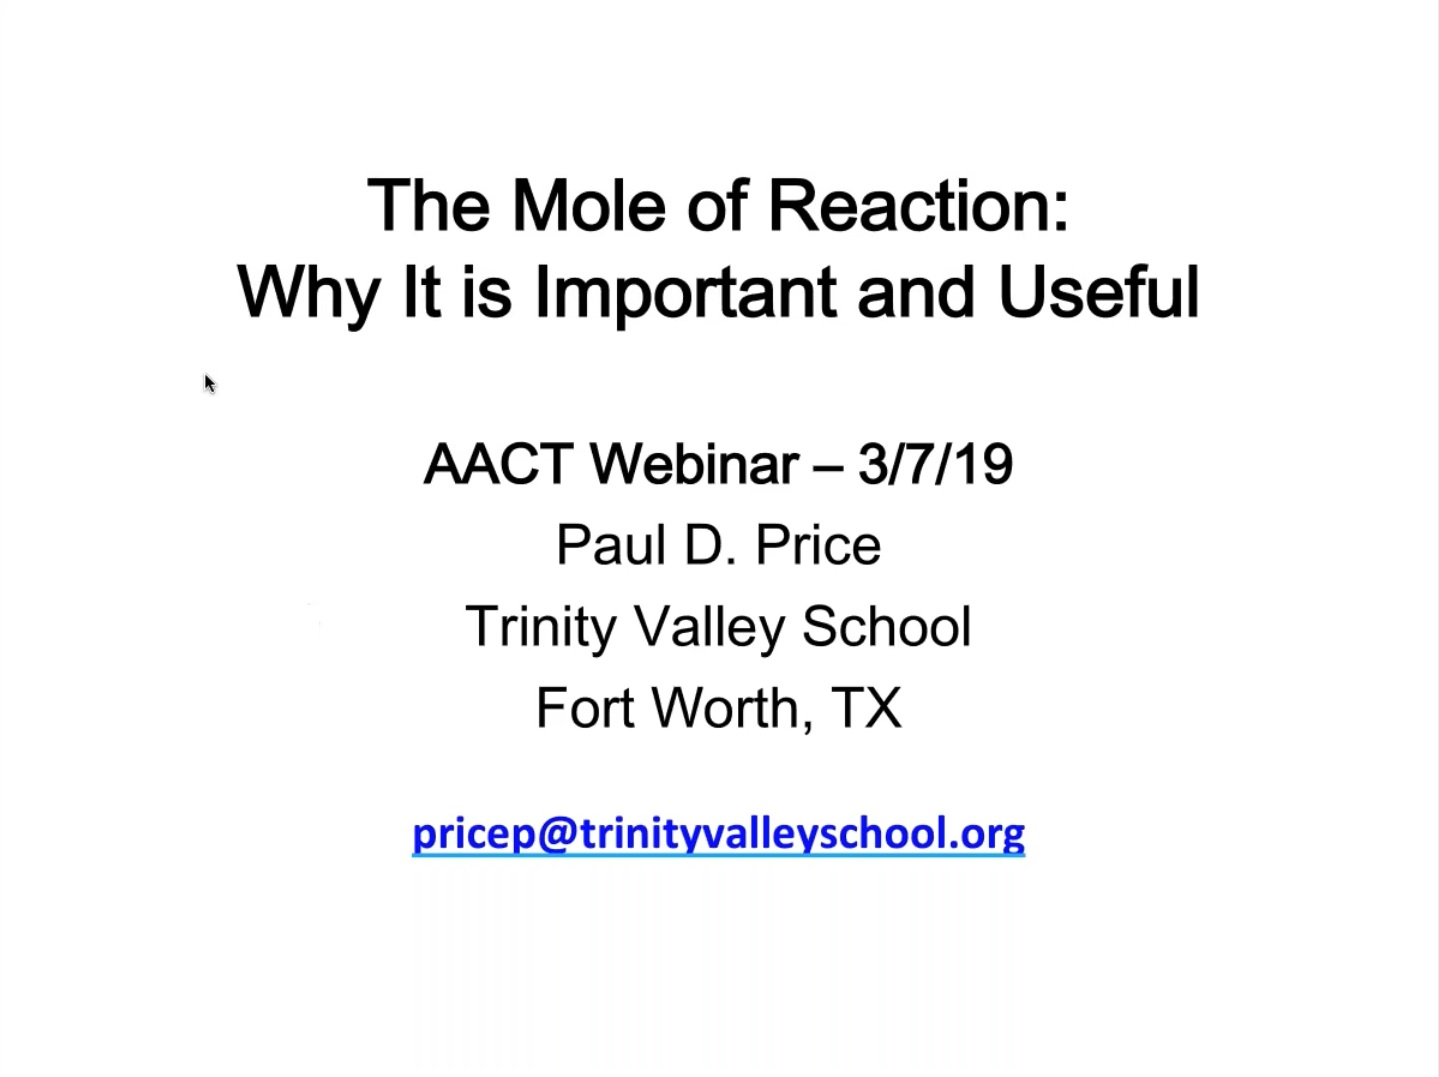 Mole reaction thumbnail